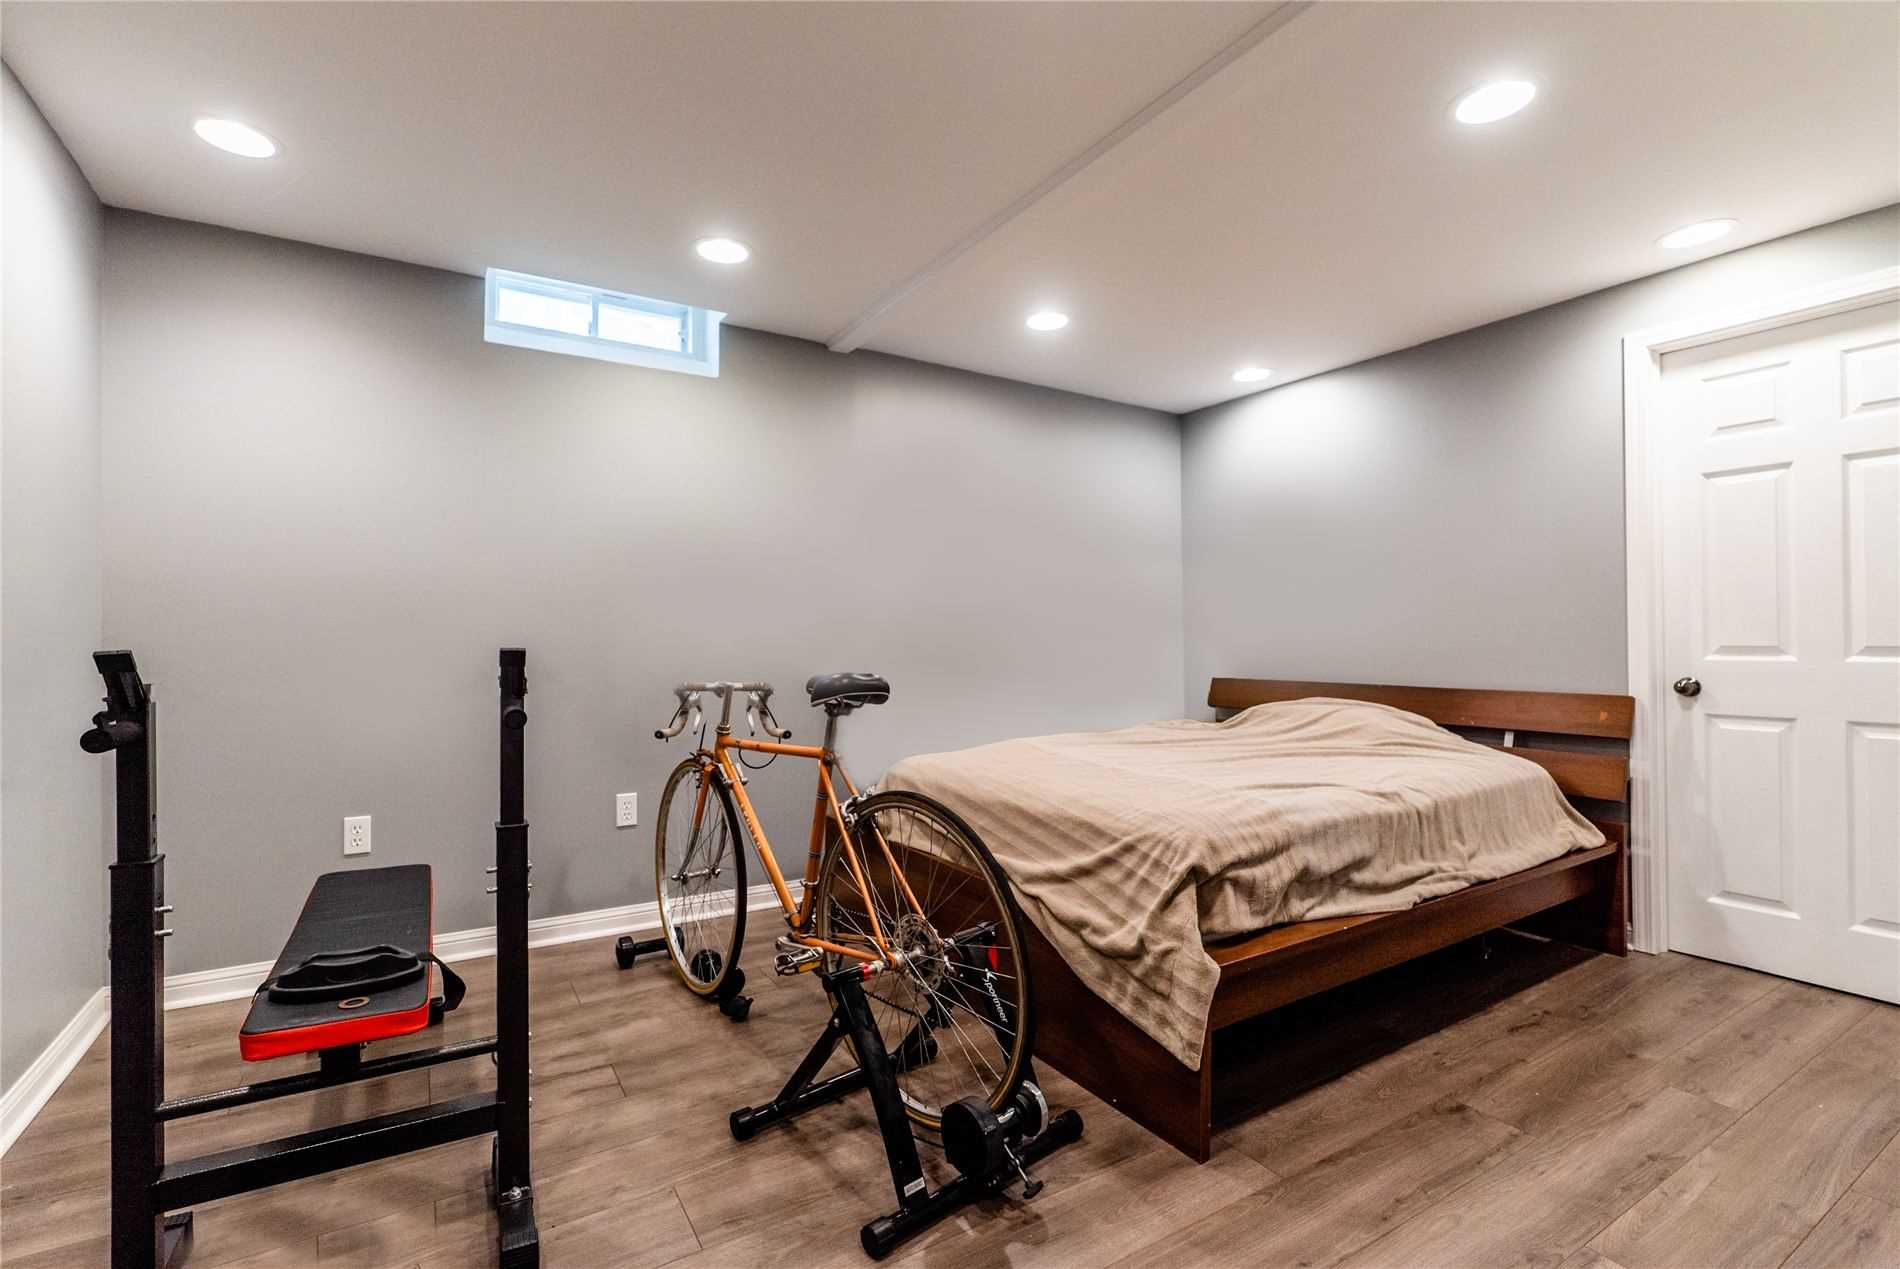 Detached house For Sale In Barrie - 66 Pepler Pl, Barrie, Ontario, Canada L4N5G9 , 3 Bedrooms Bedrooms, ,3 BathroomsBathrooms,Detached,For Sale,Pepler